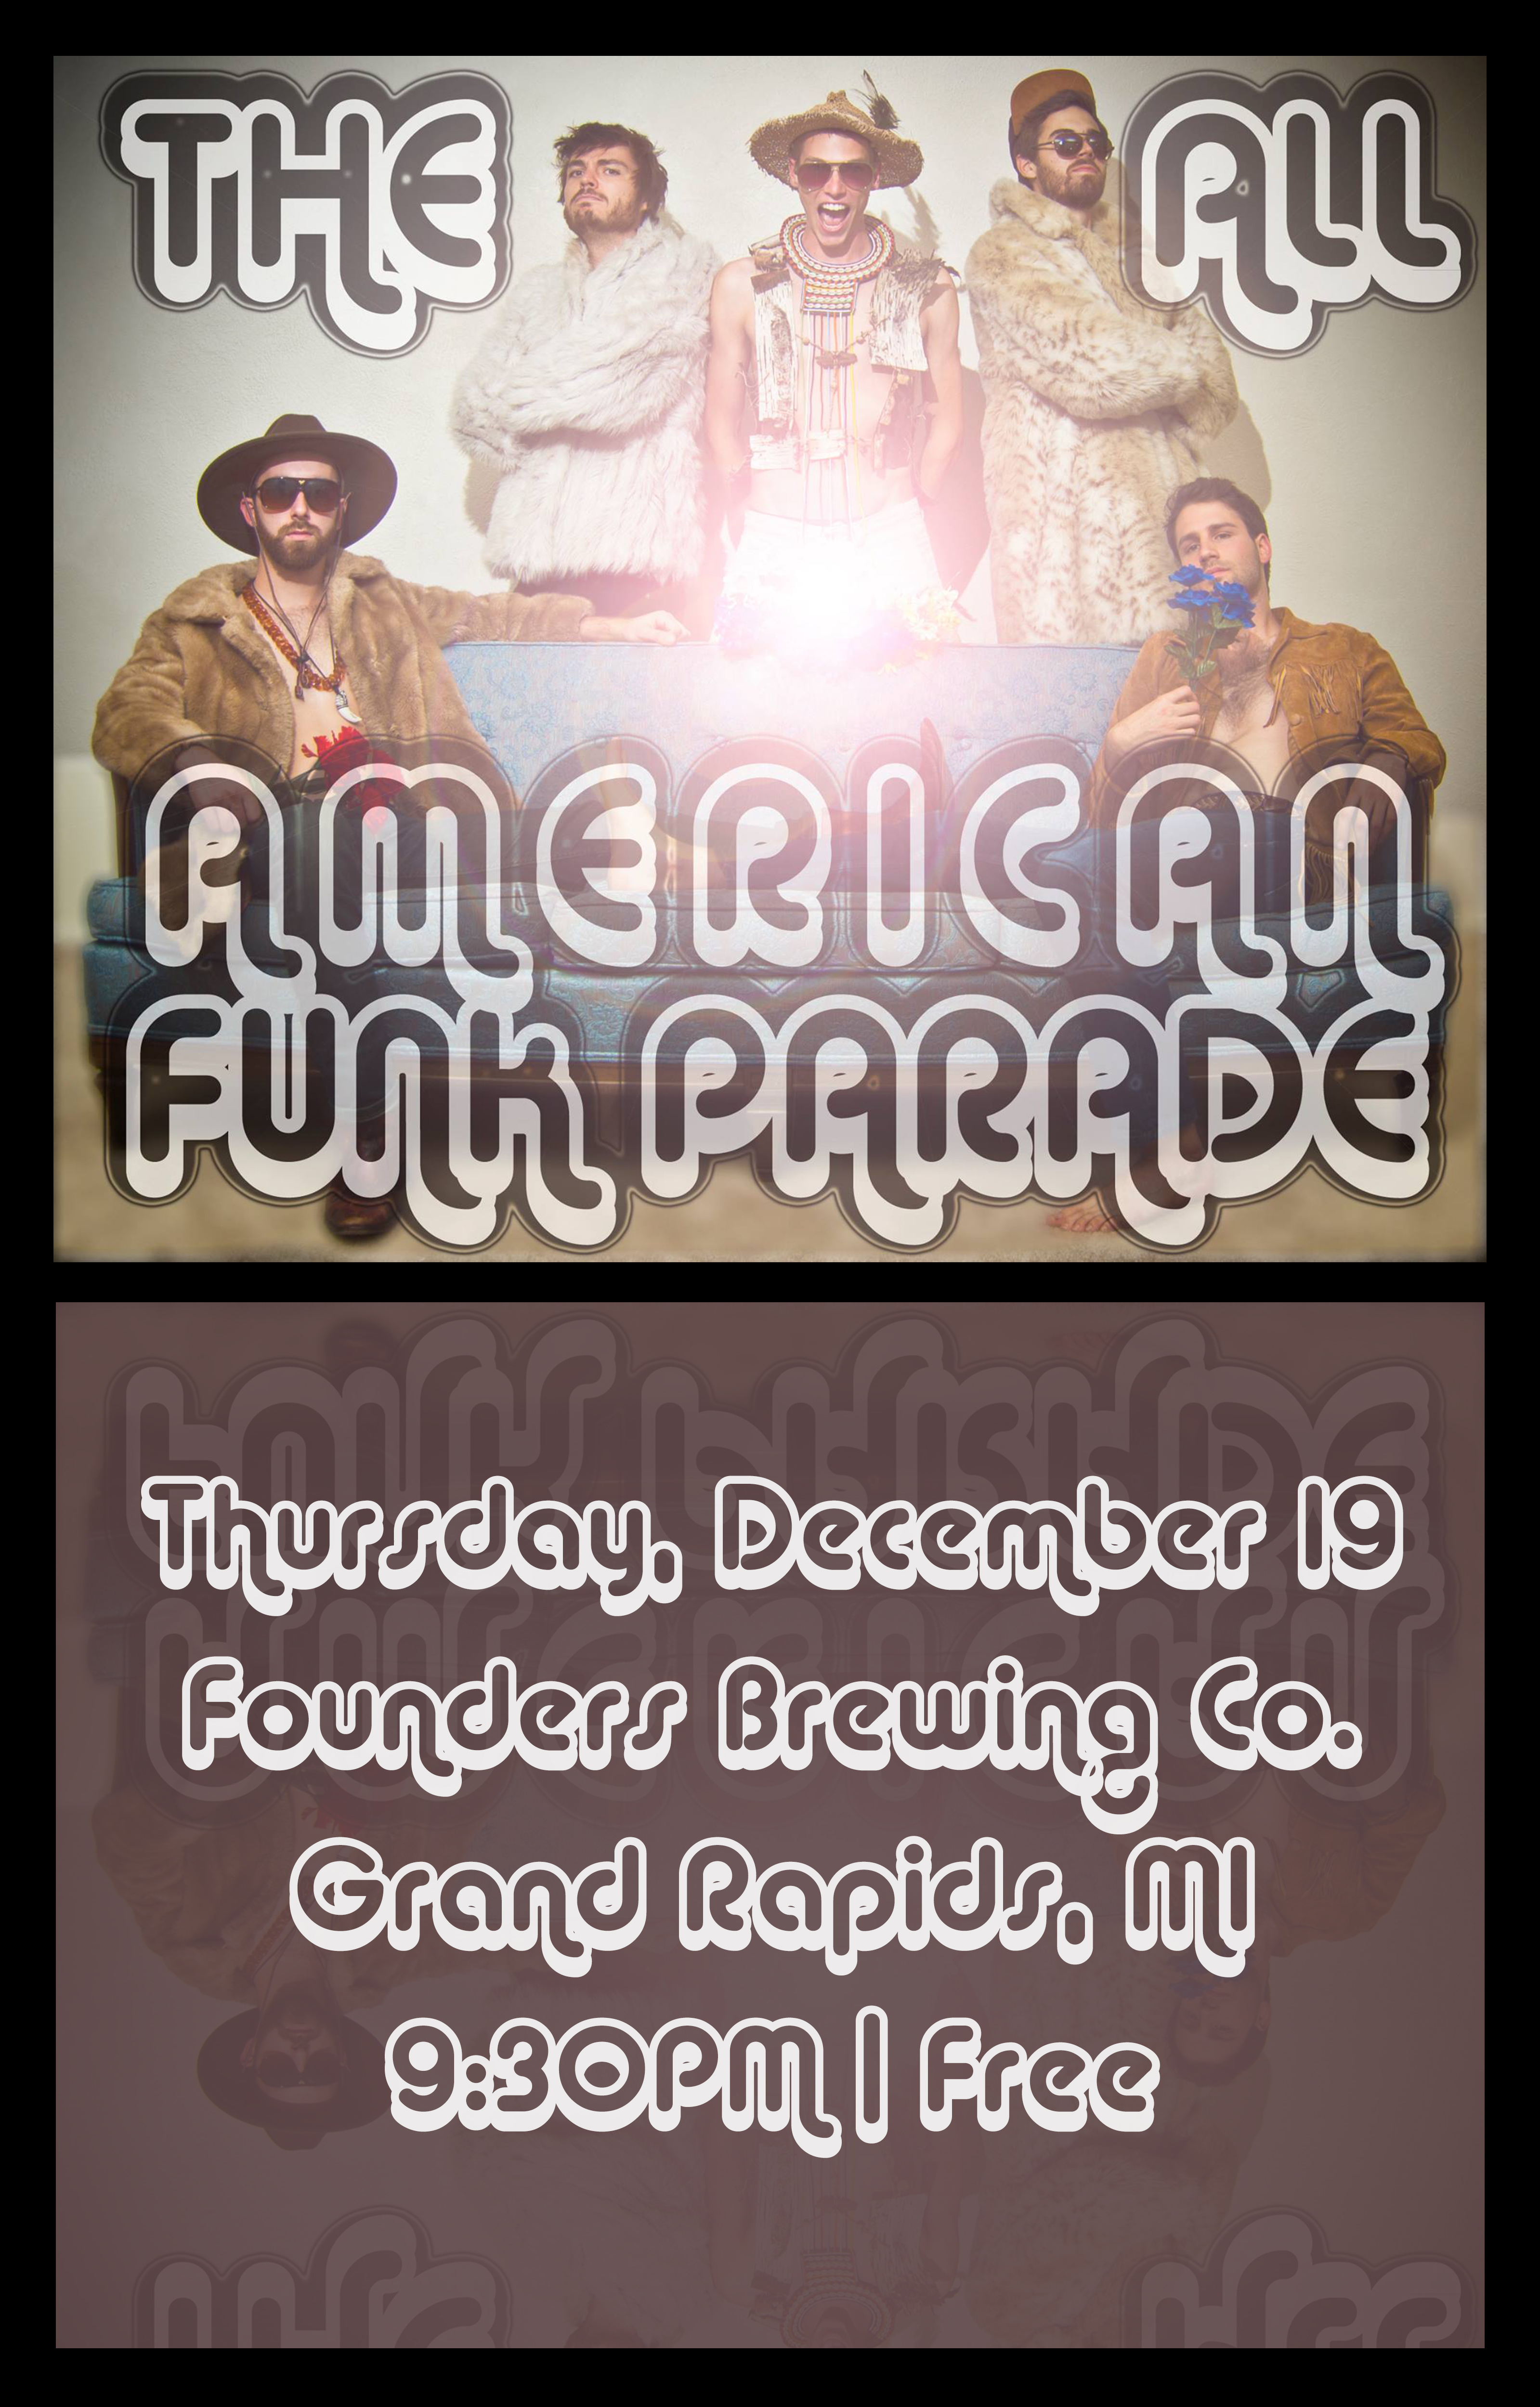 The All American Funk Parade event poster hosted by Founders Brewing Co.